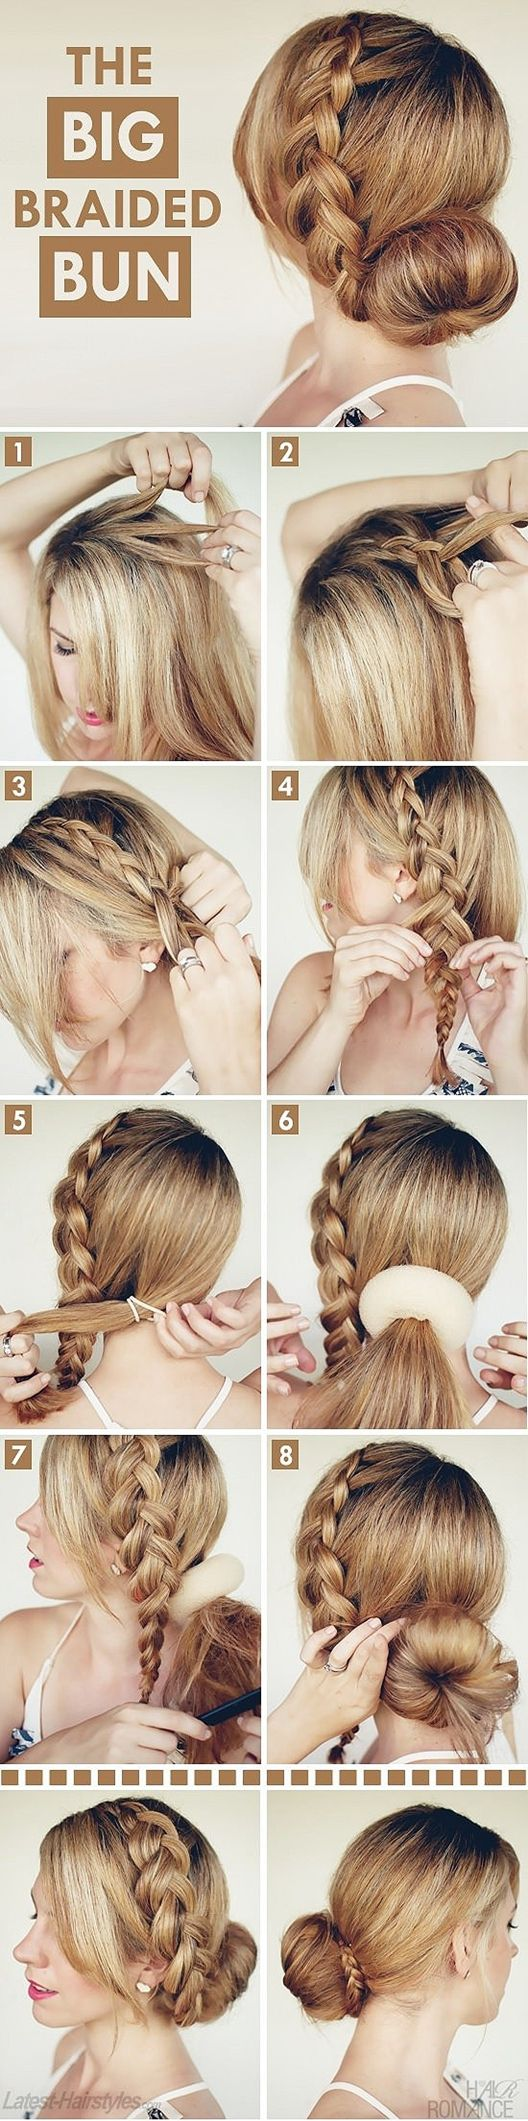 hair styles for long hair this is cool